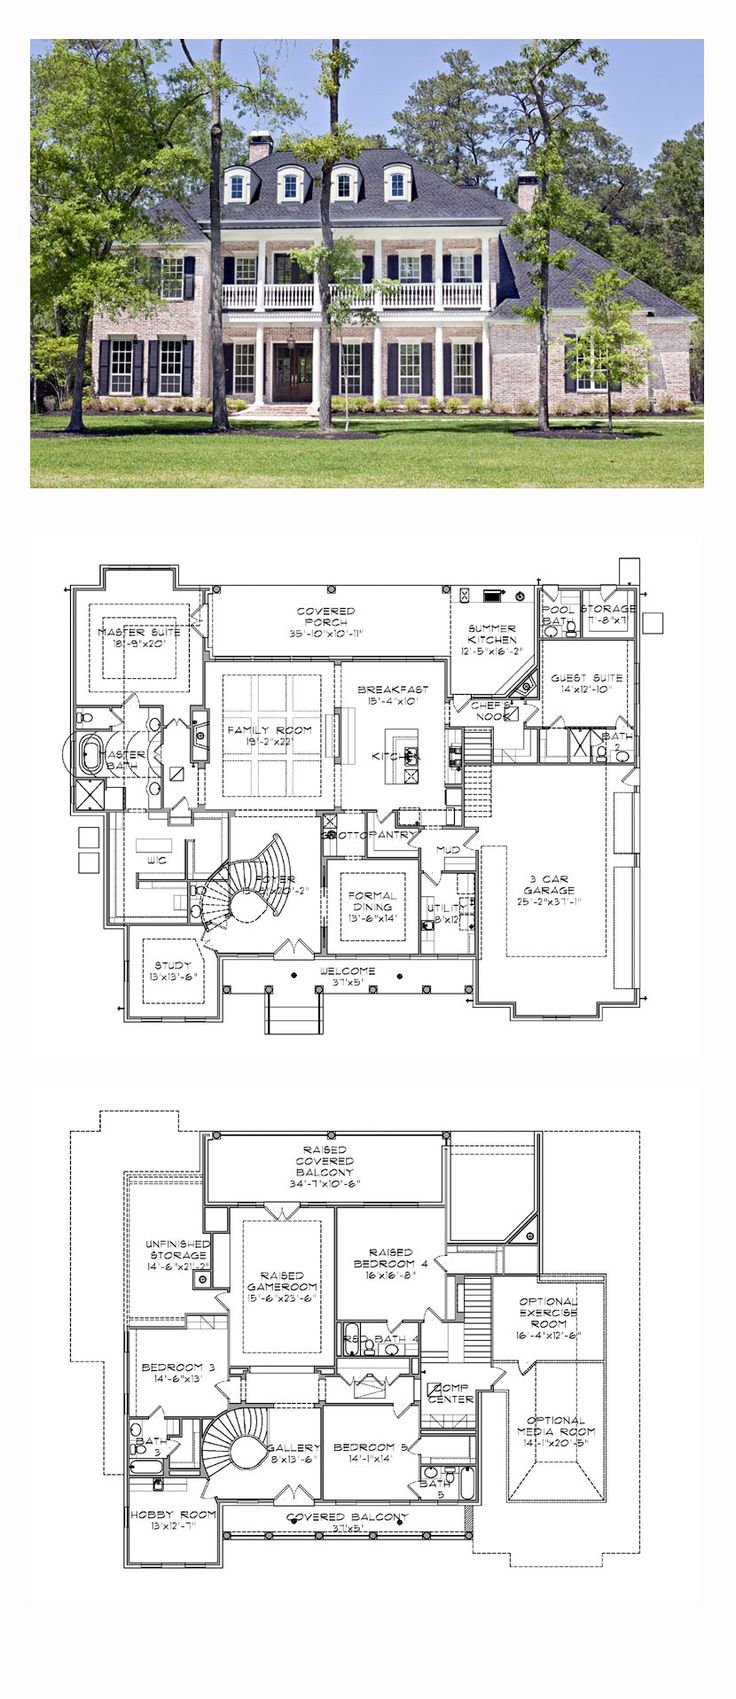 5 bedroom 3 bathroom house plans - Plantation House Plan 77818